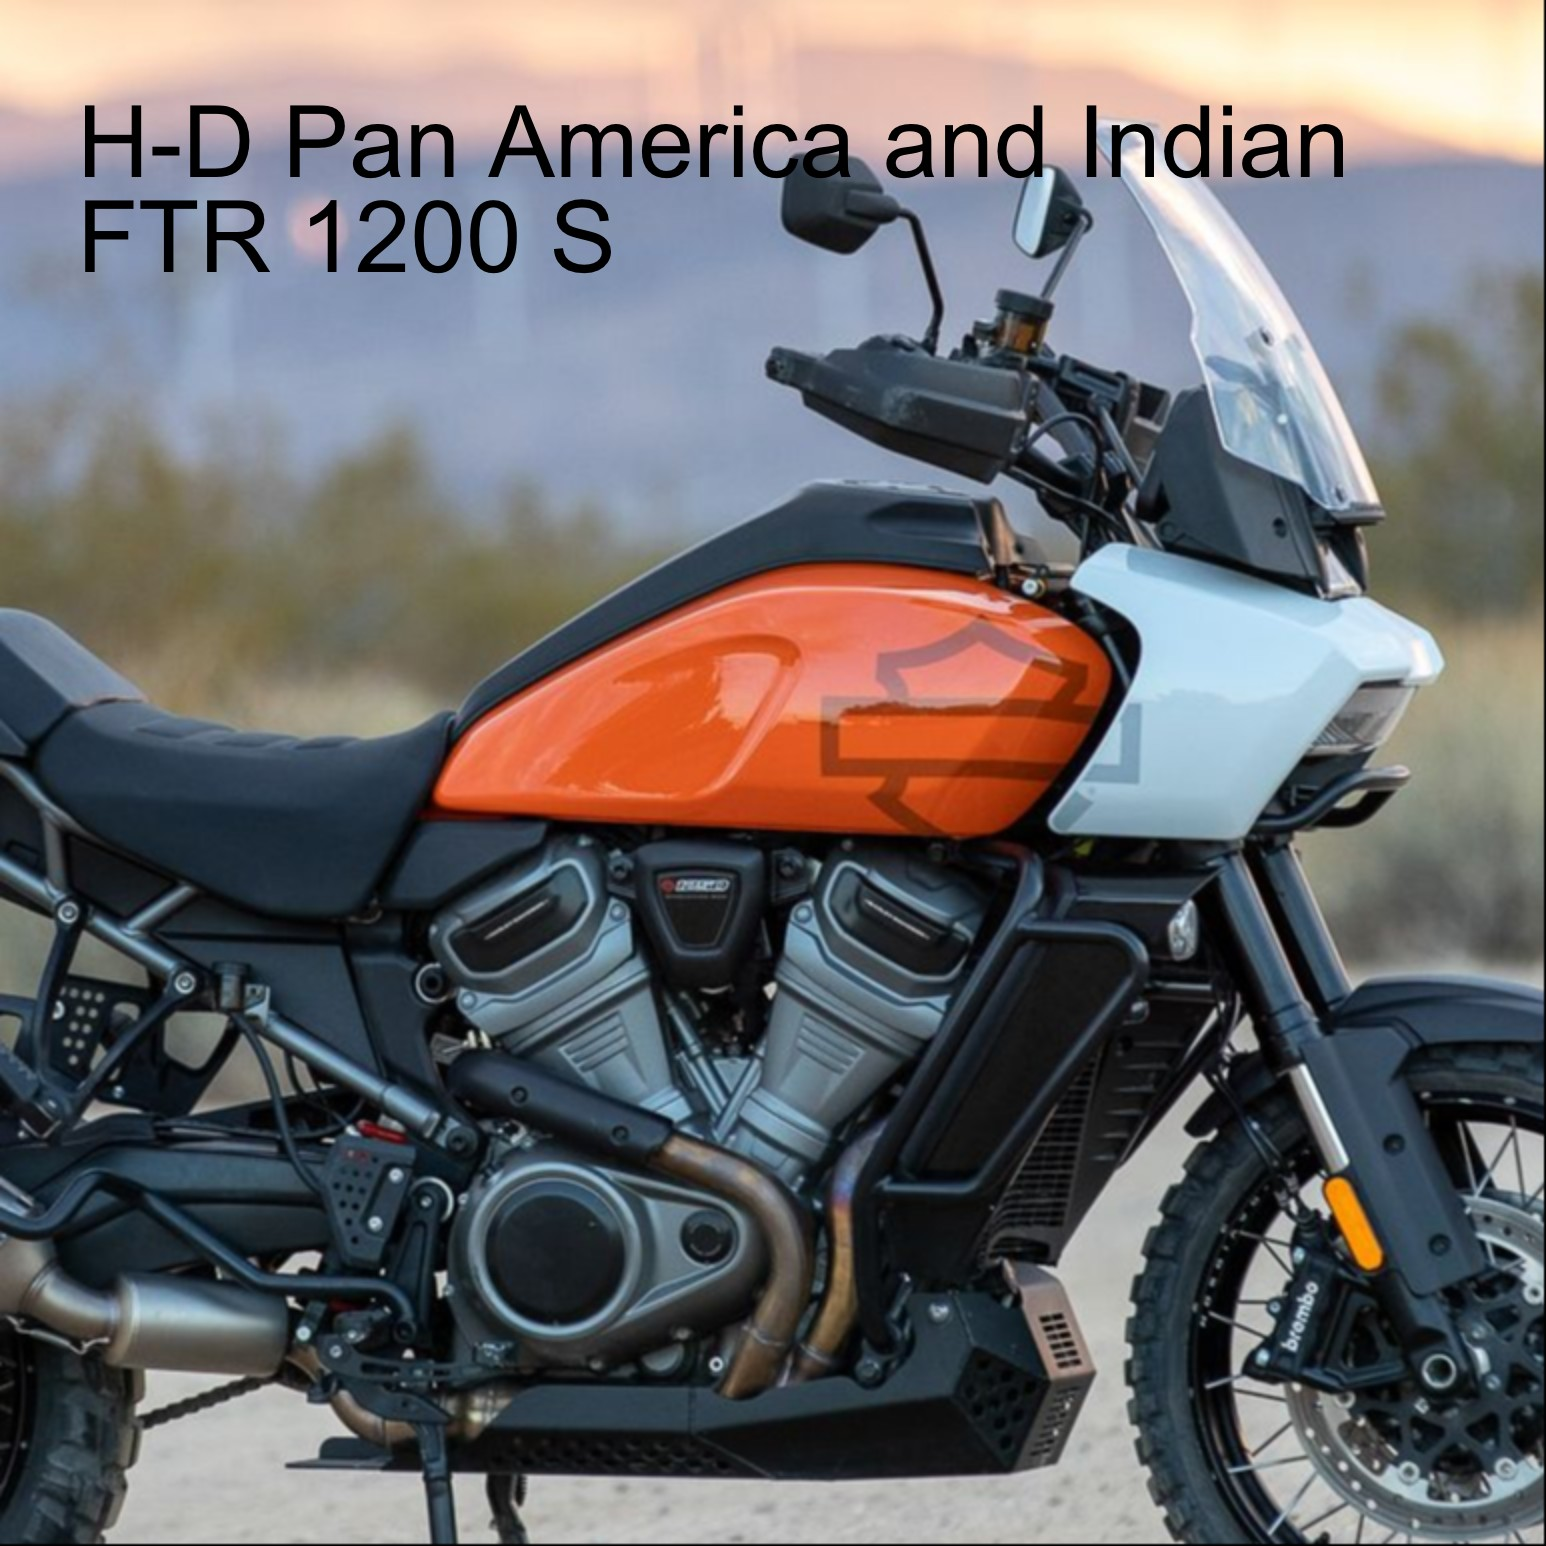 H-D Pan America and Indian FTR 1200 S